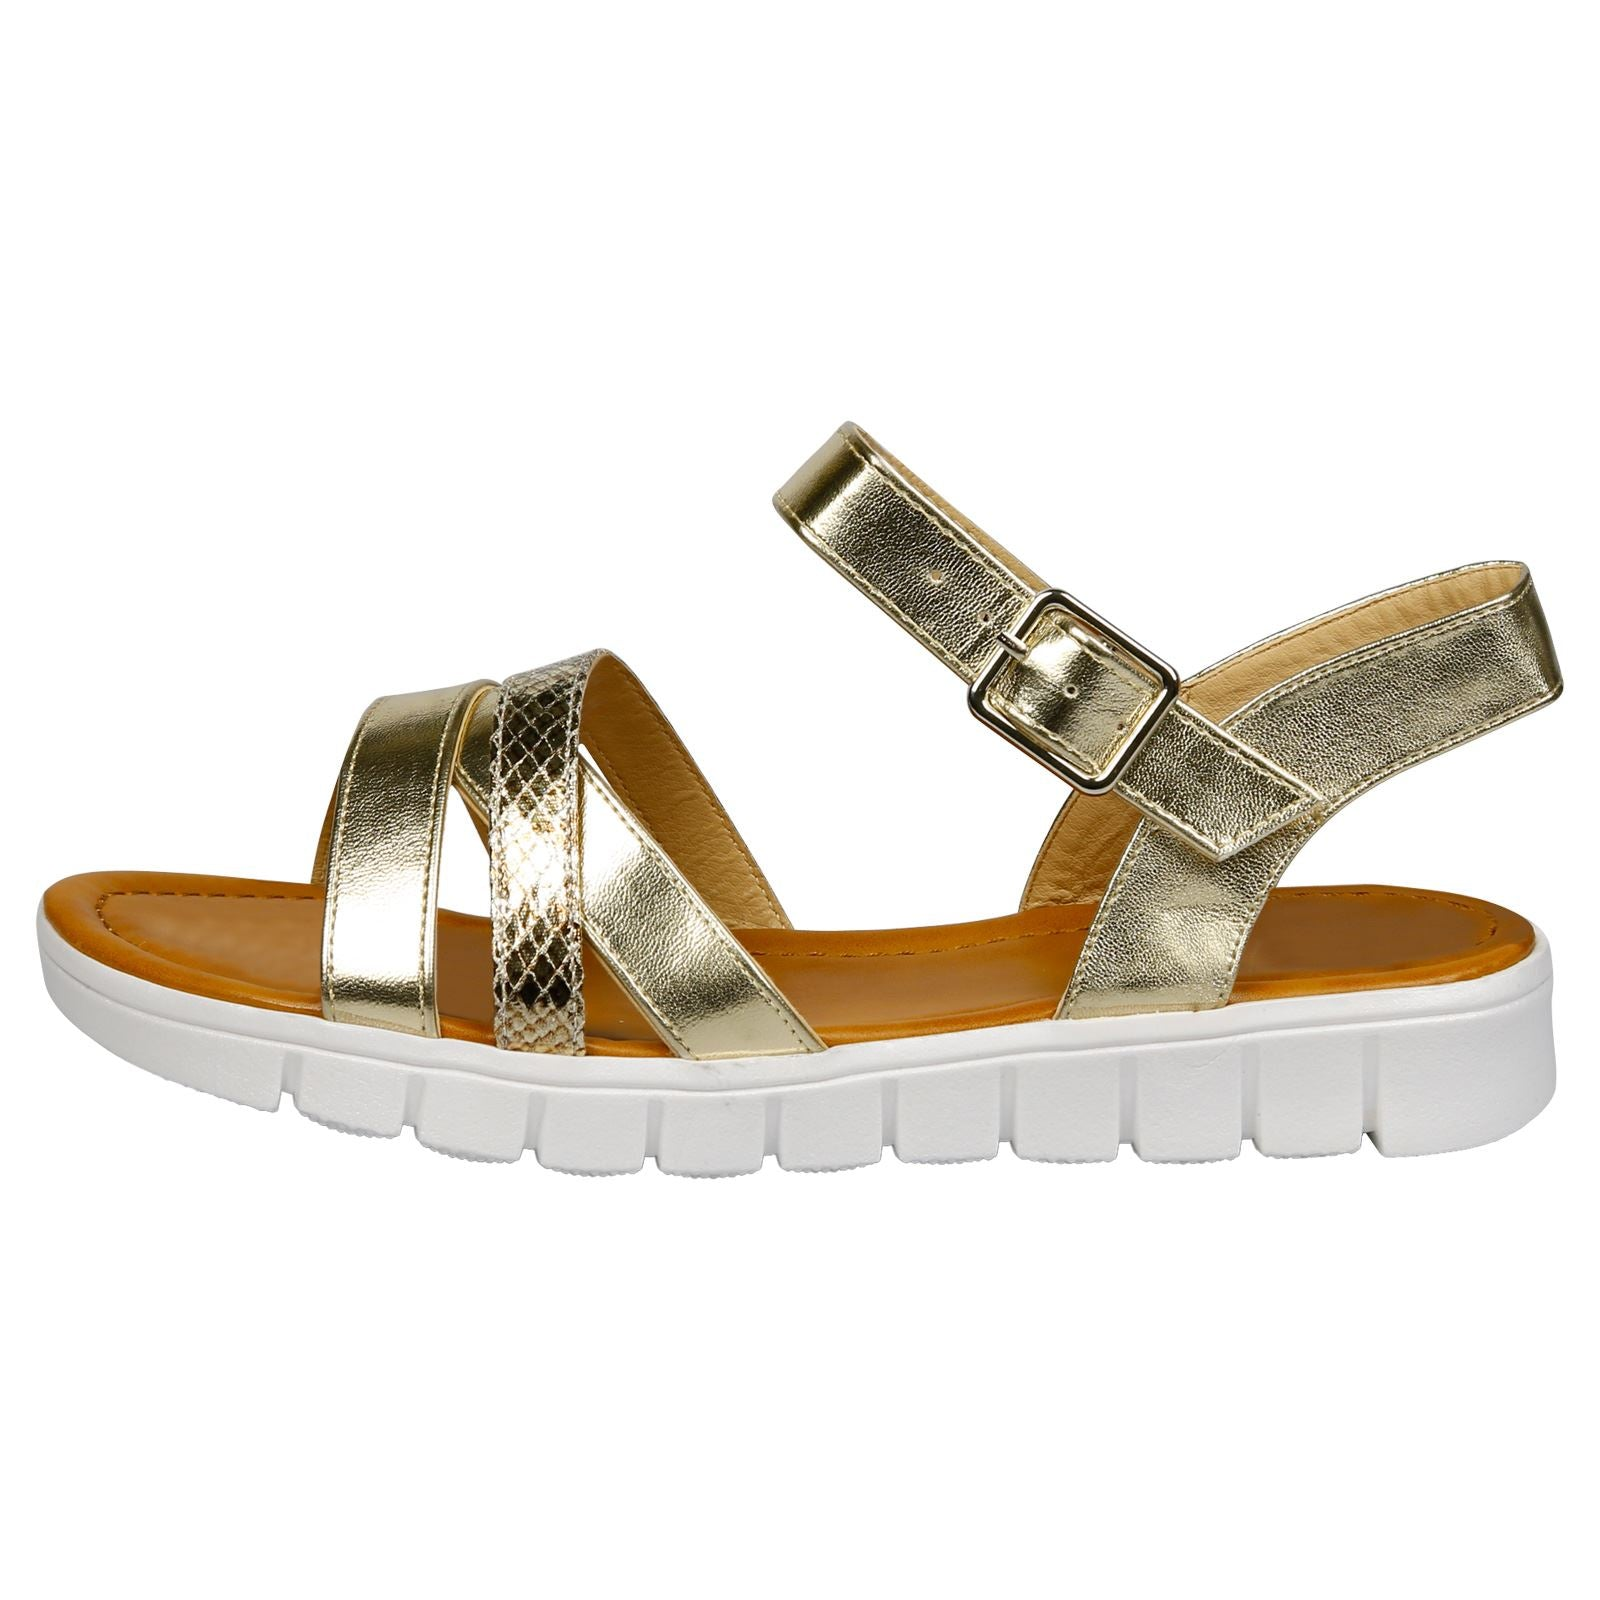 Rosalie Flat Strappy Sandals in Gold